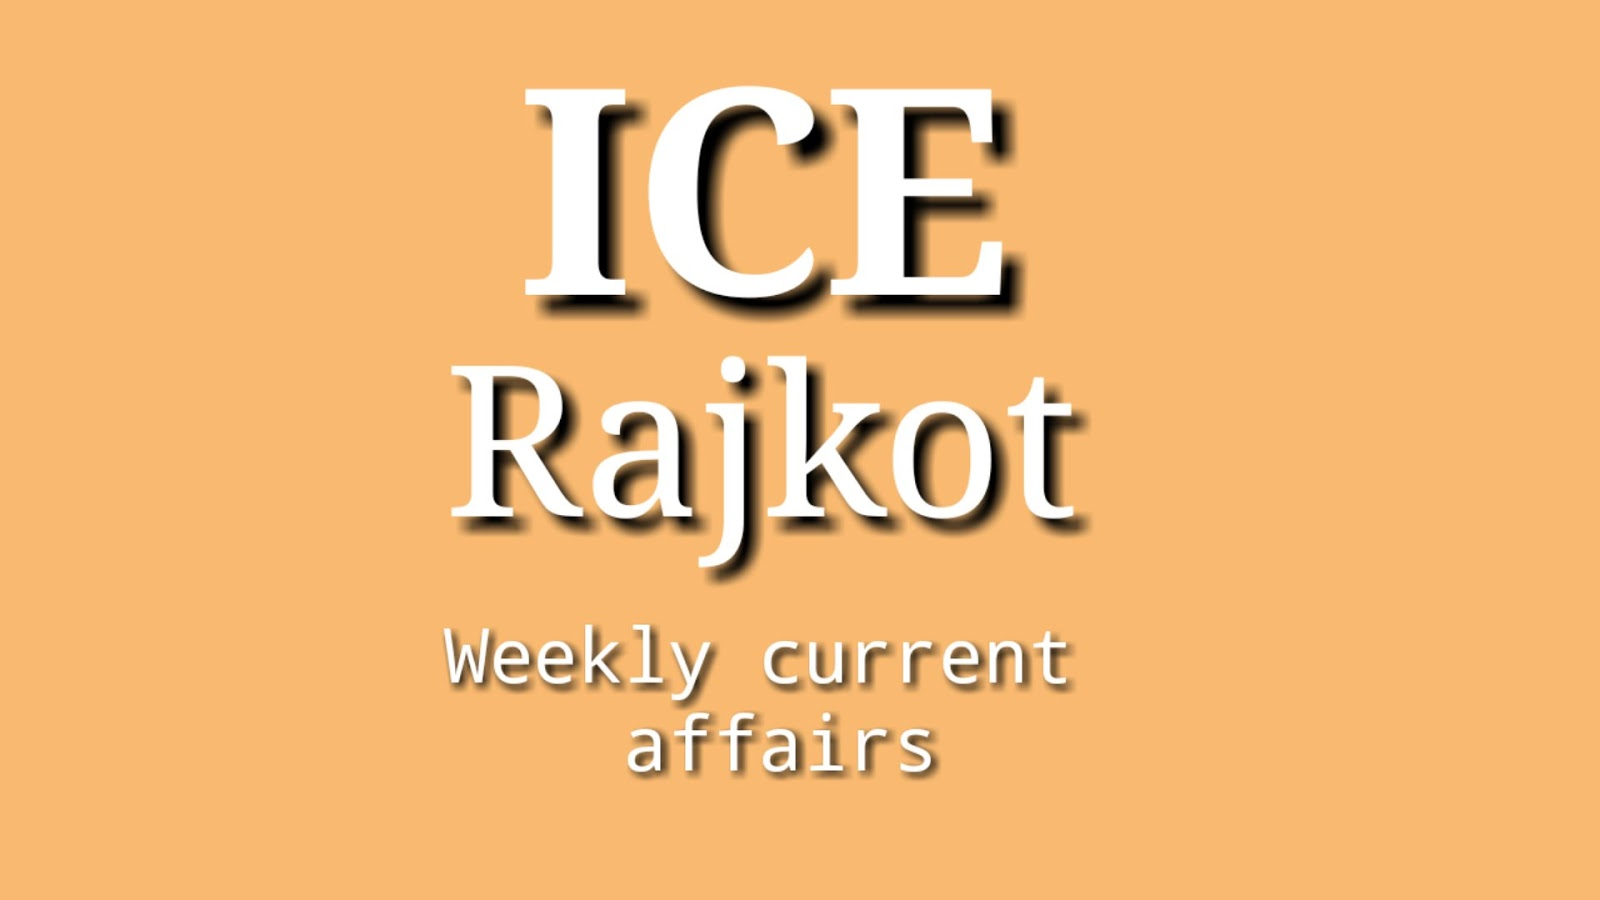 weekly current affairs [Date: 10-03-2019 To 16-03-2019]